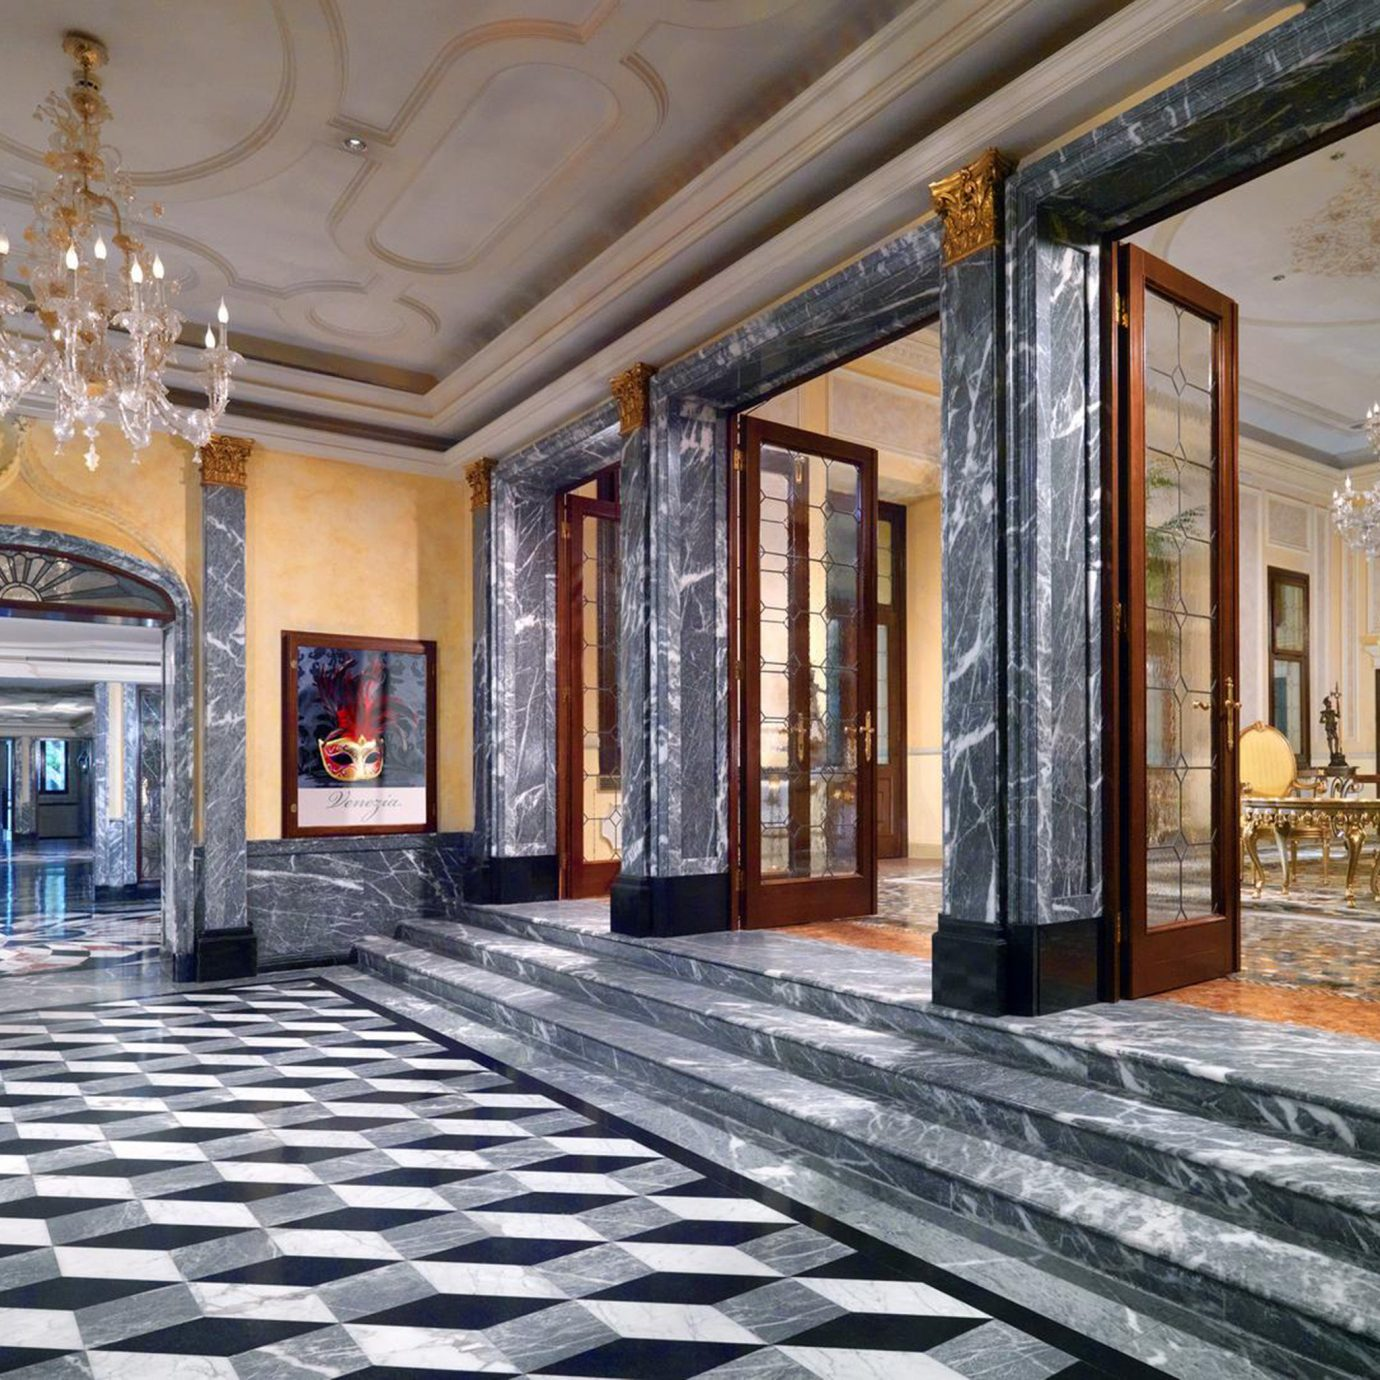 City Classic Historic Lobby Waterfront property mansion Architecture home palace flooring living room hall Courtyard chapel way stone